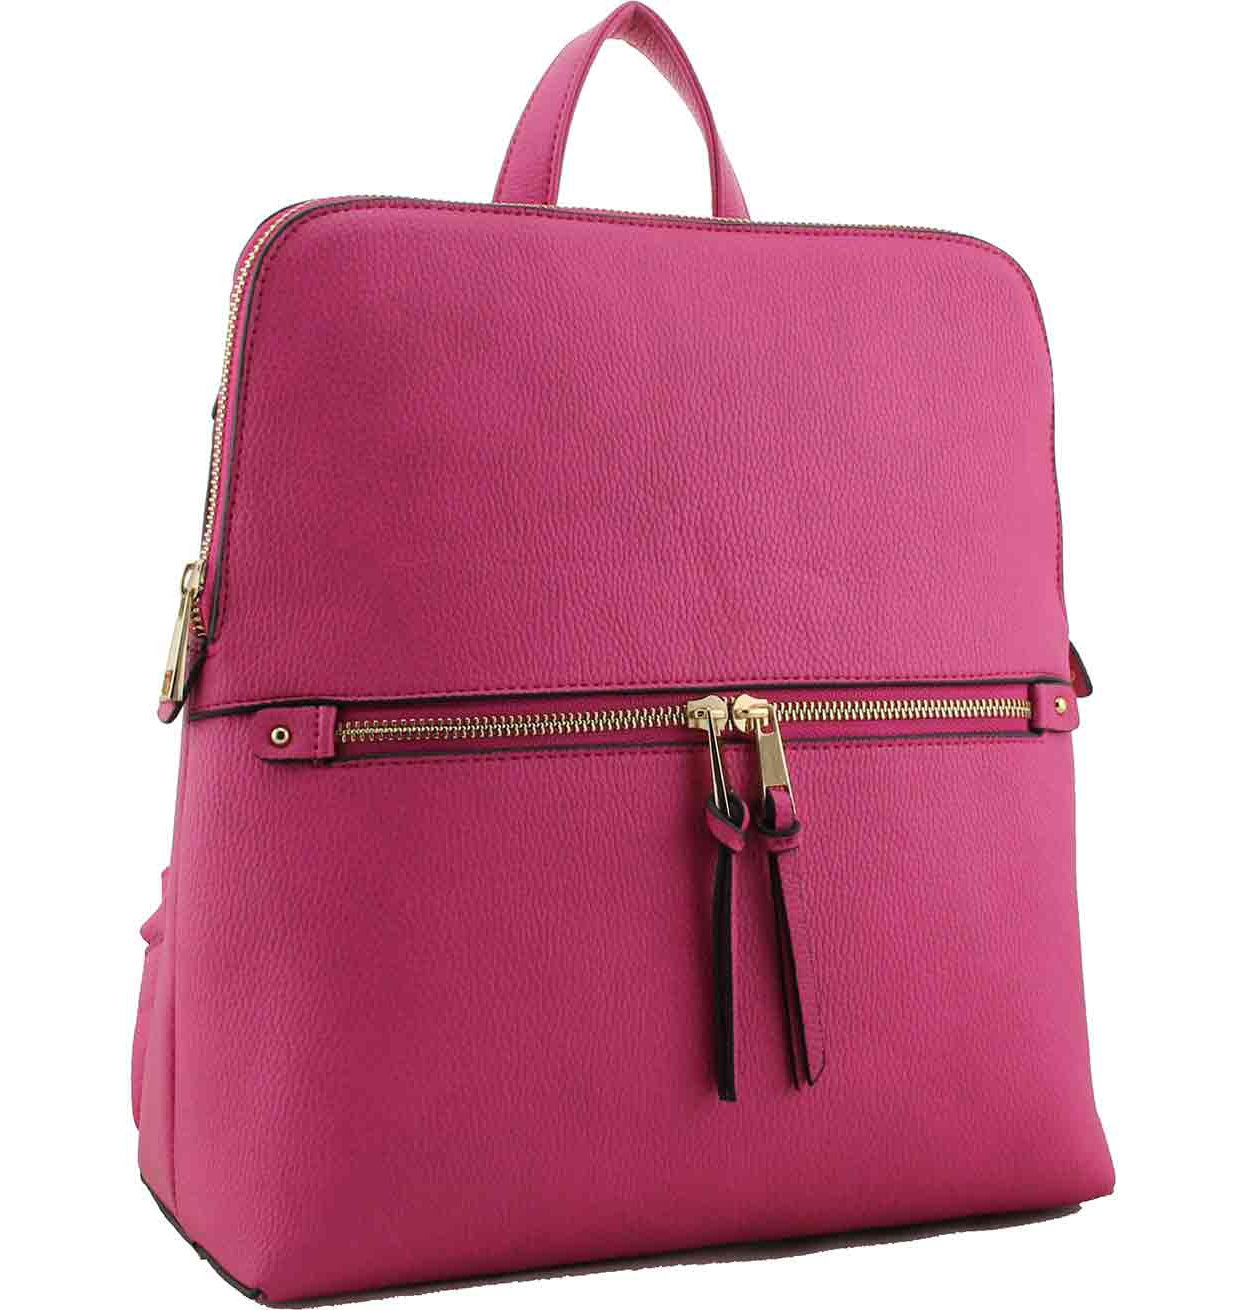 91059bb73c5f H1739 -Julie fuchsia backpack ~ BAGZONE - Suppliers of Fashion ...